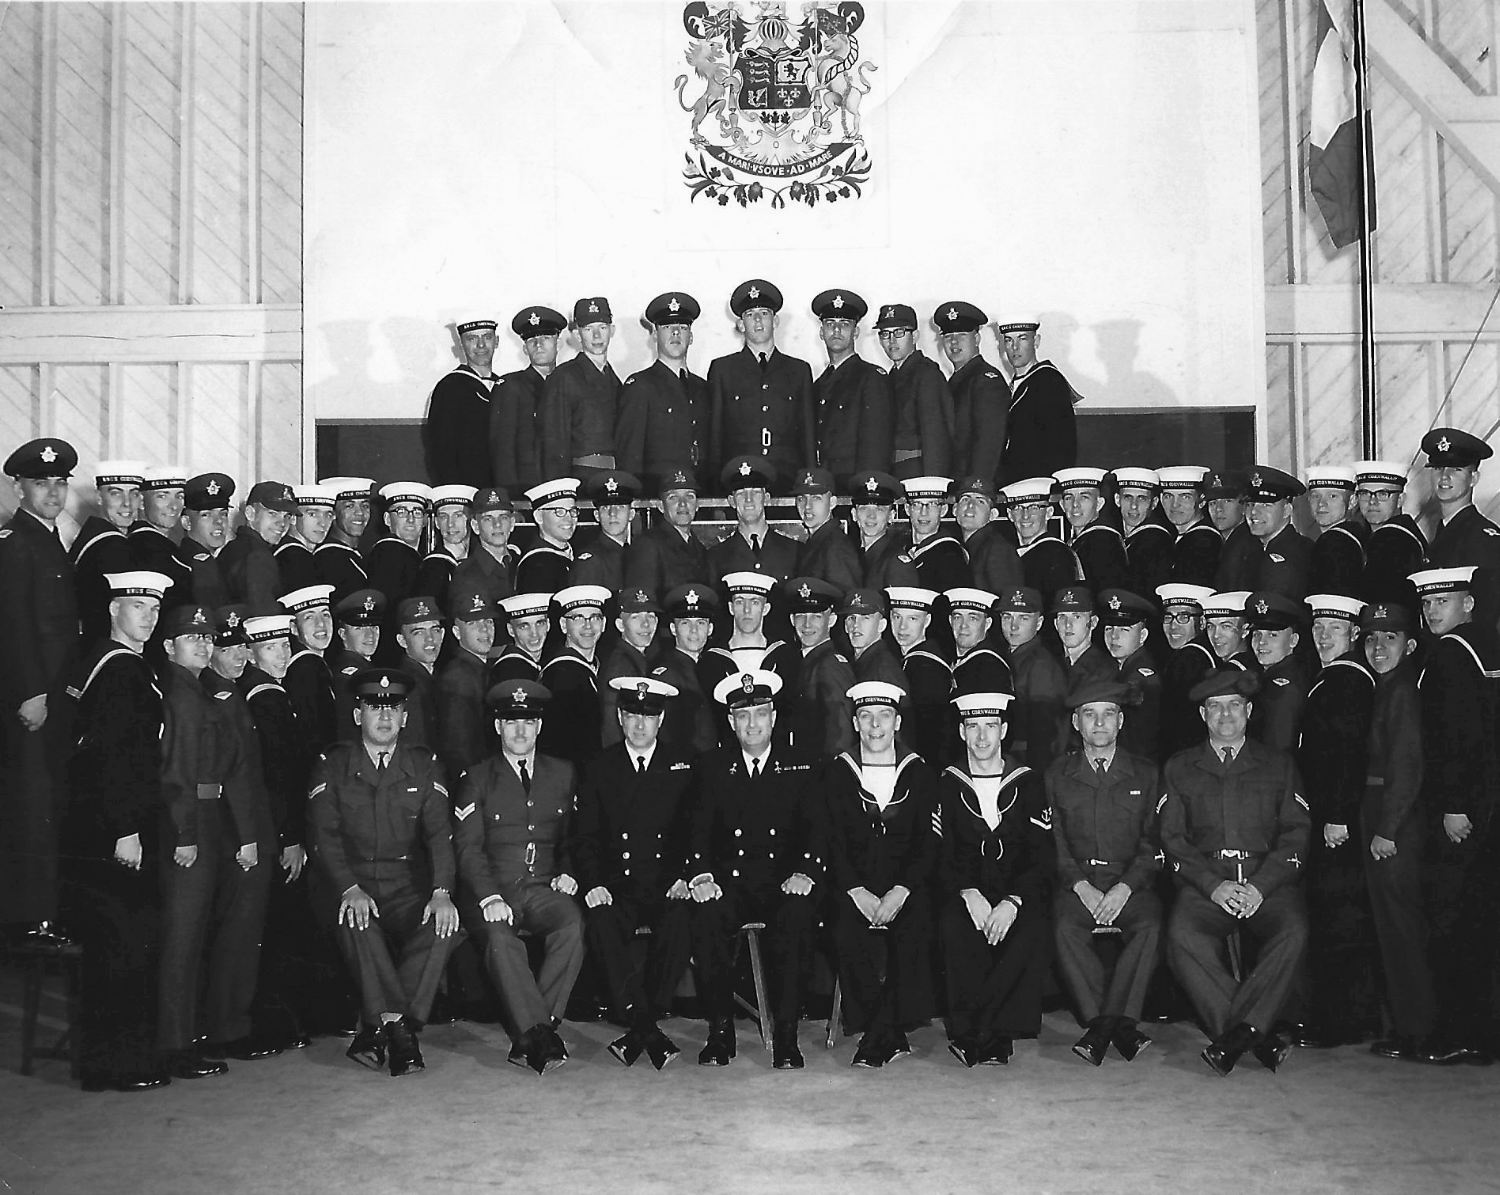 HMCS Cornwallis, Mixed Group of Army, Navy, Air Force